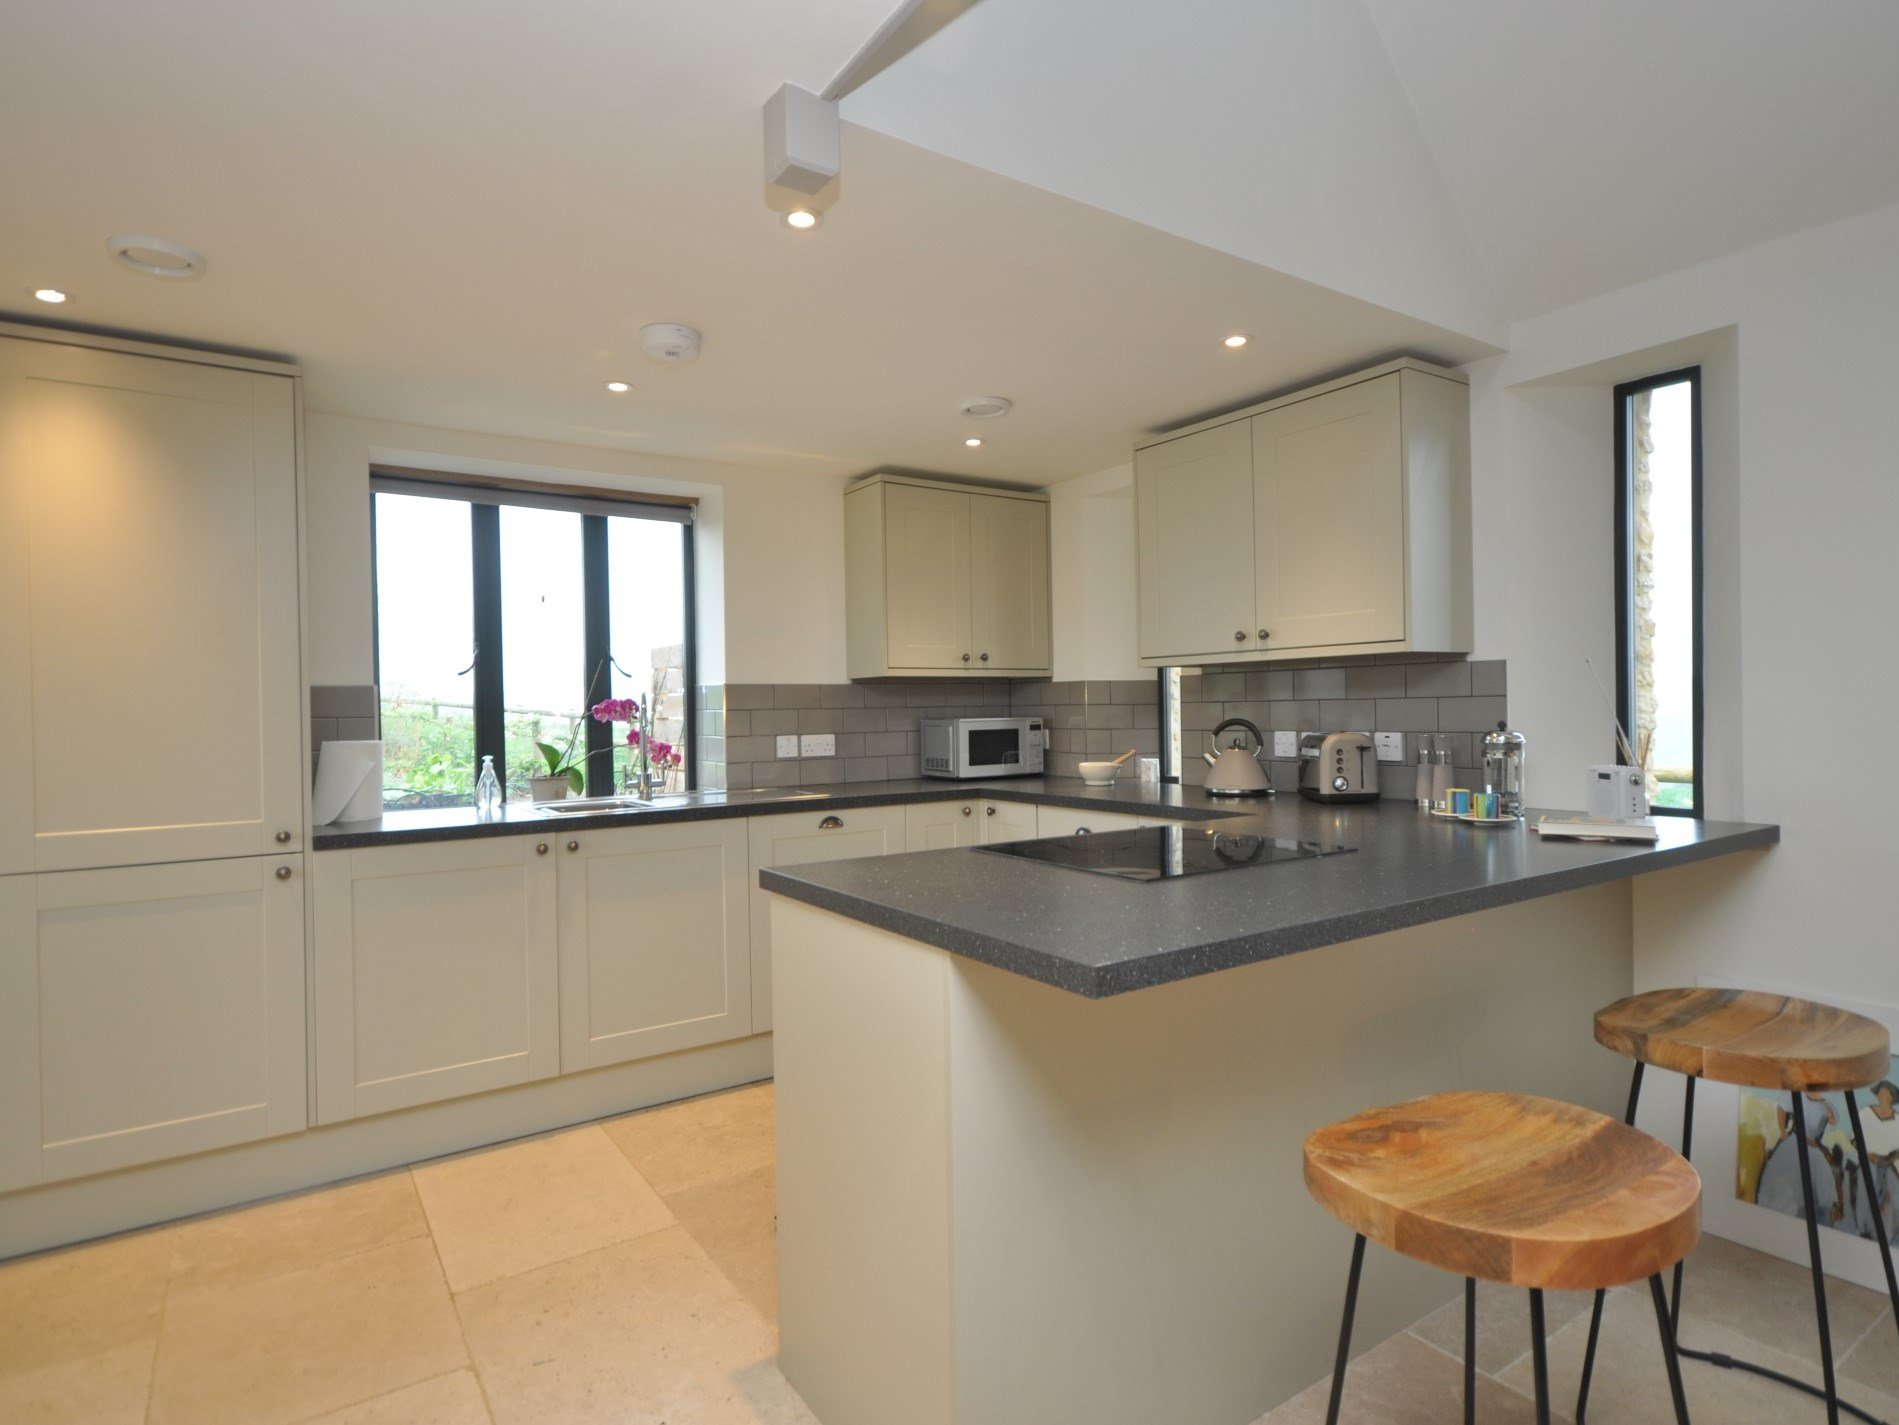 A contemporary kitchen with great views